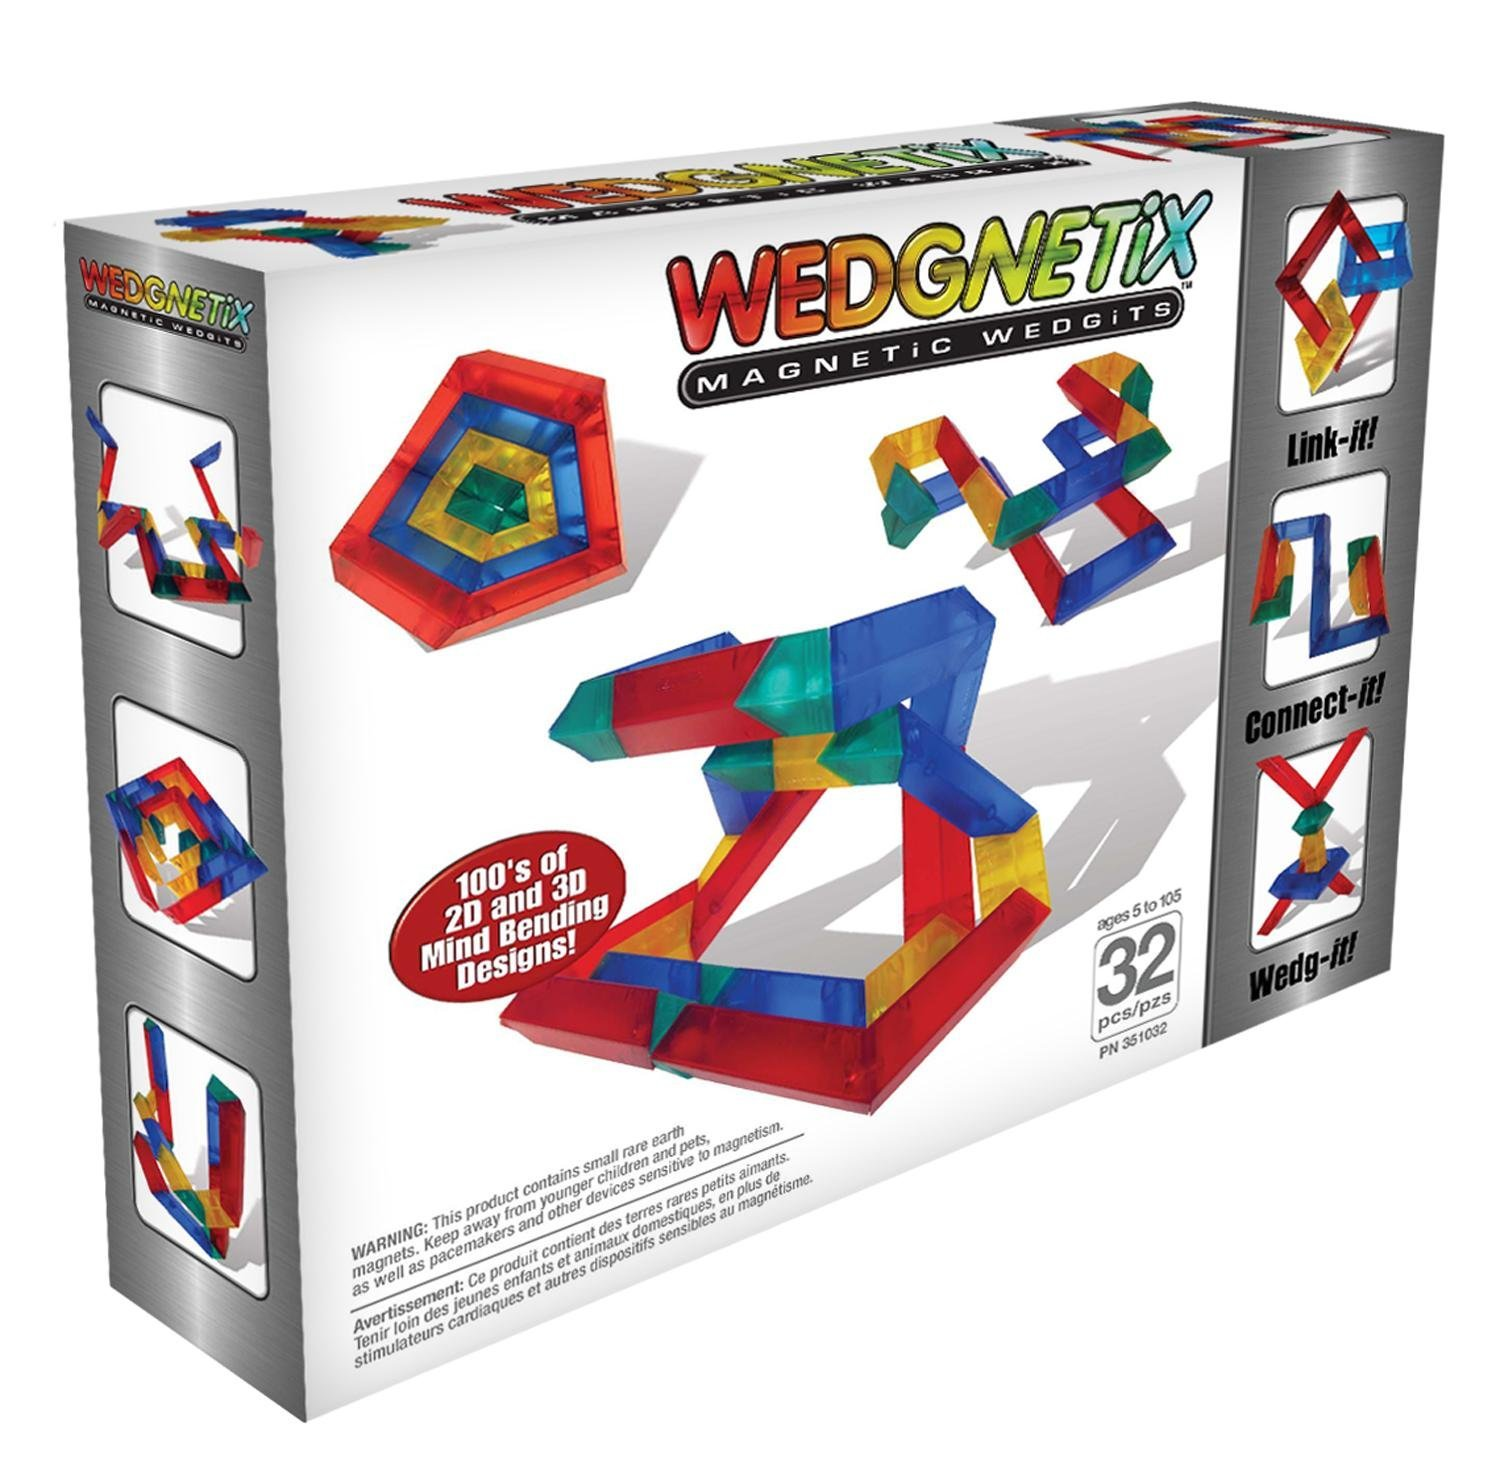 WEDGNETiX 32 Piece Magnetic Construction Kit by WEDGNETiX